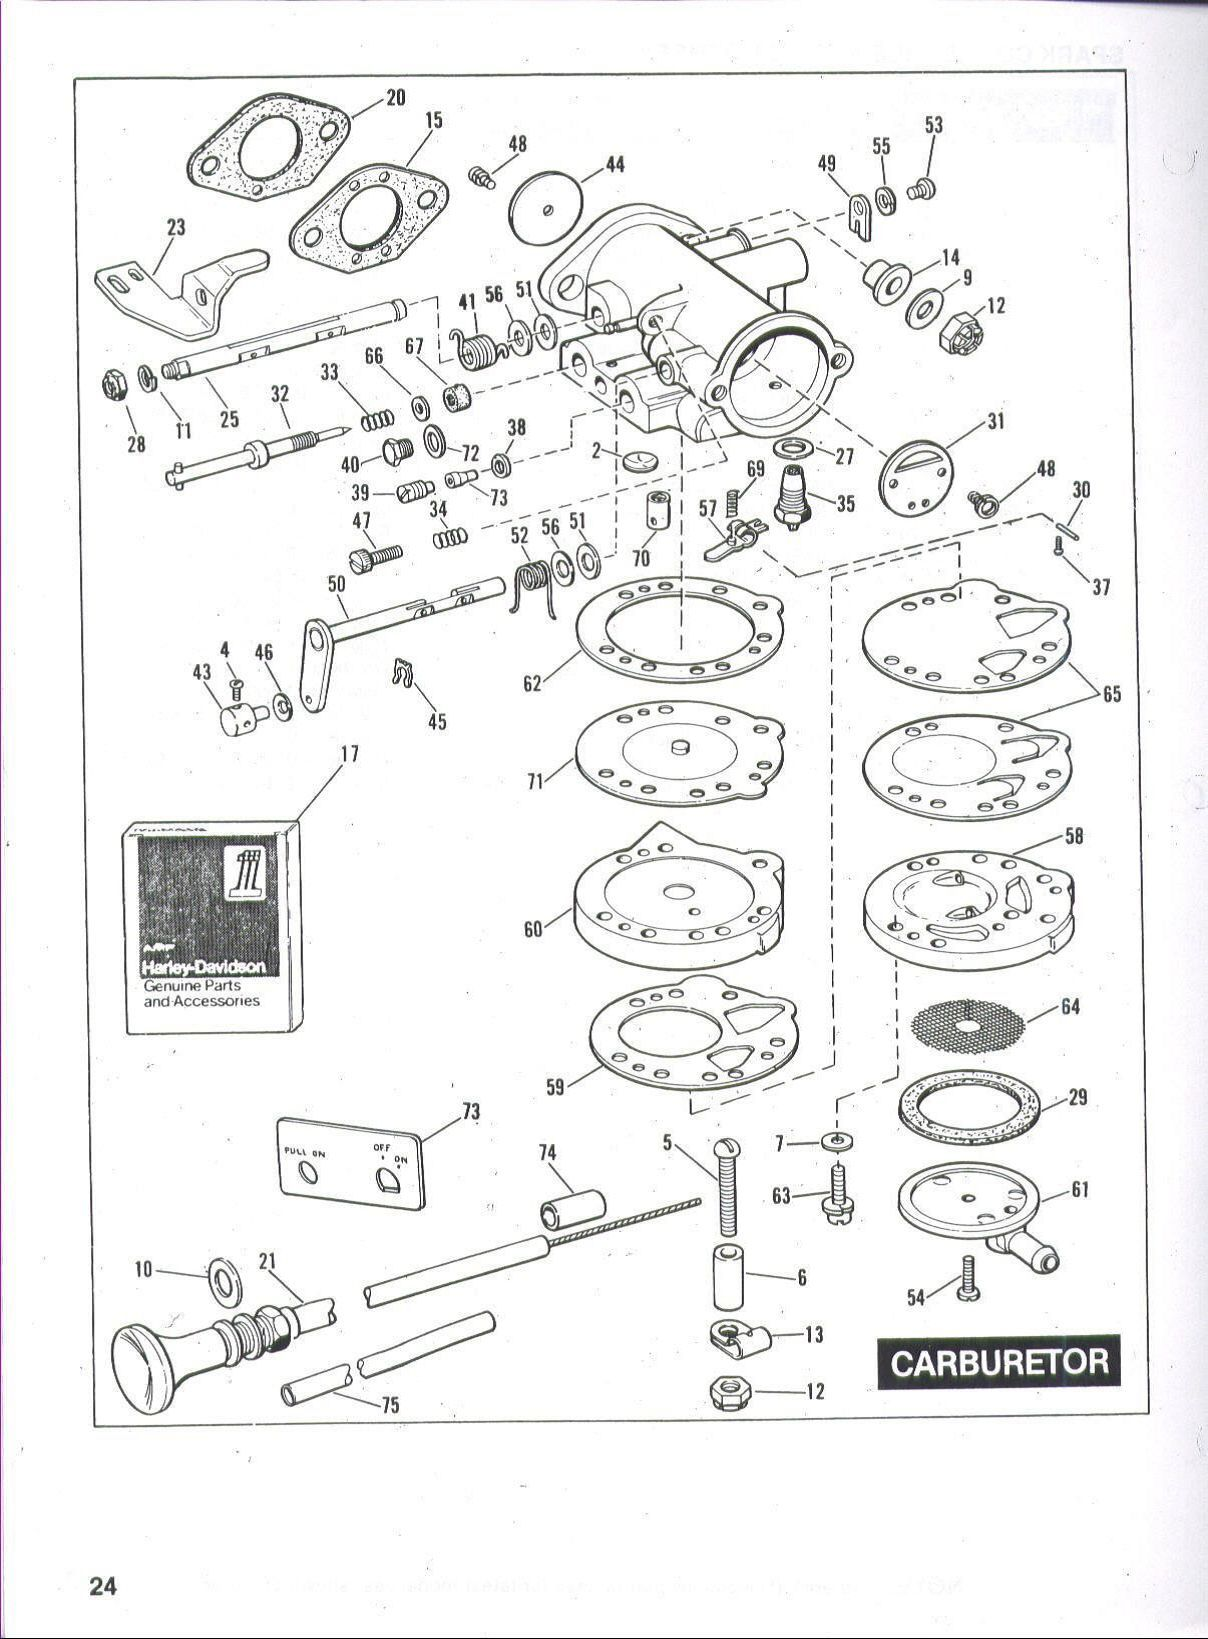 4g91 Carburetor Wiring Diagram 240 Volt Photocell 1970 Harley Davidson Golf Cart Library